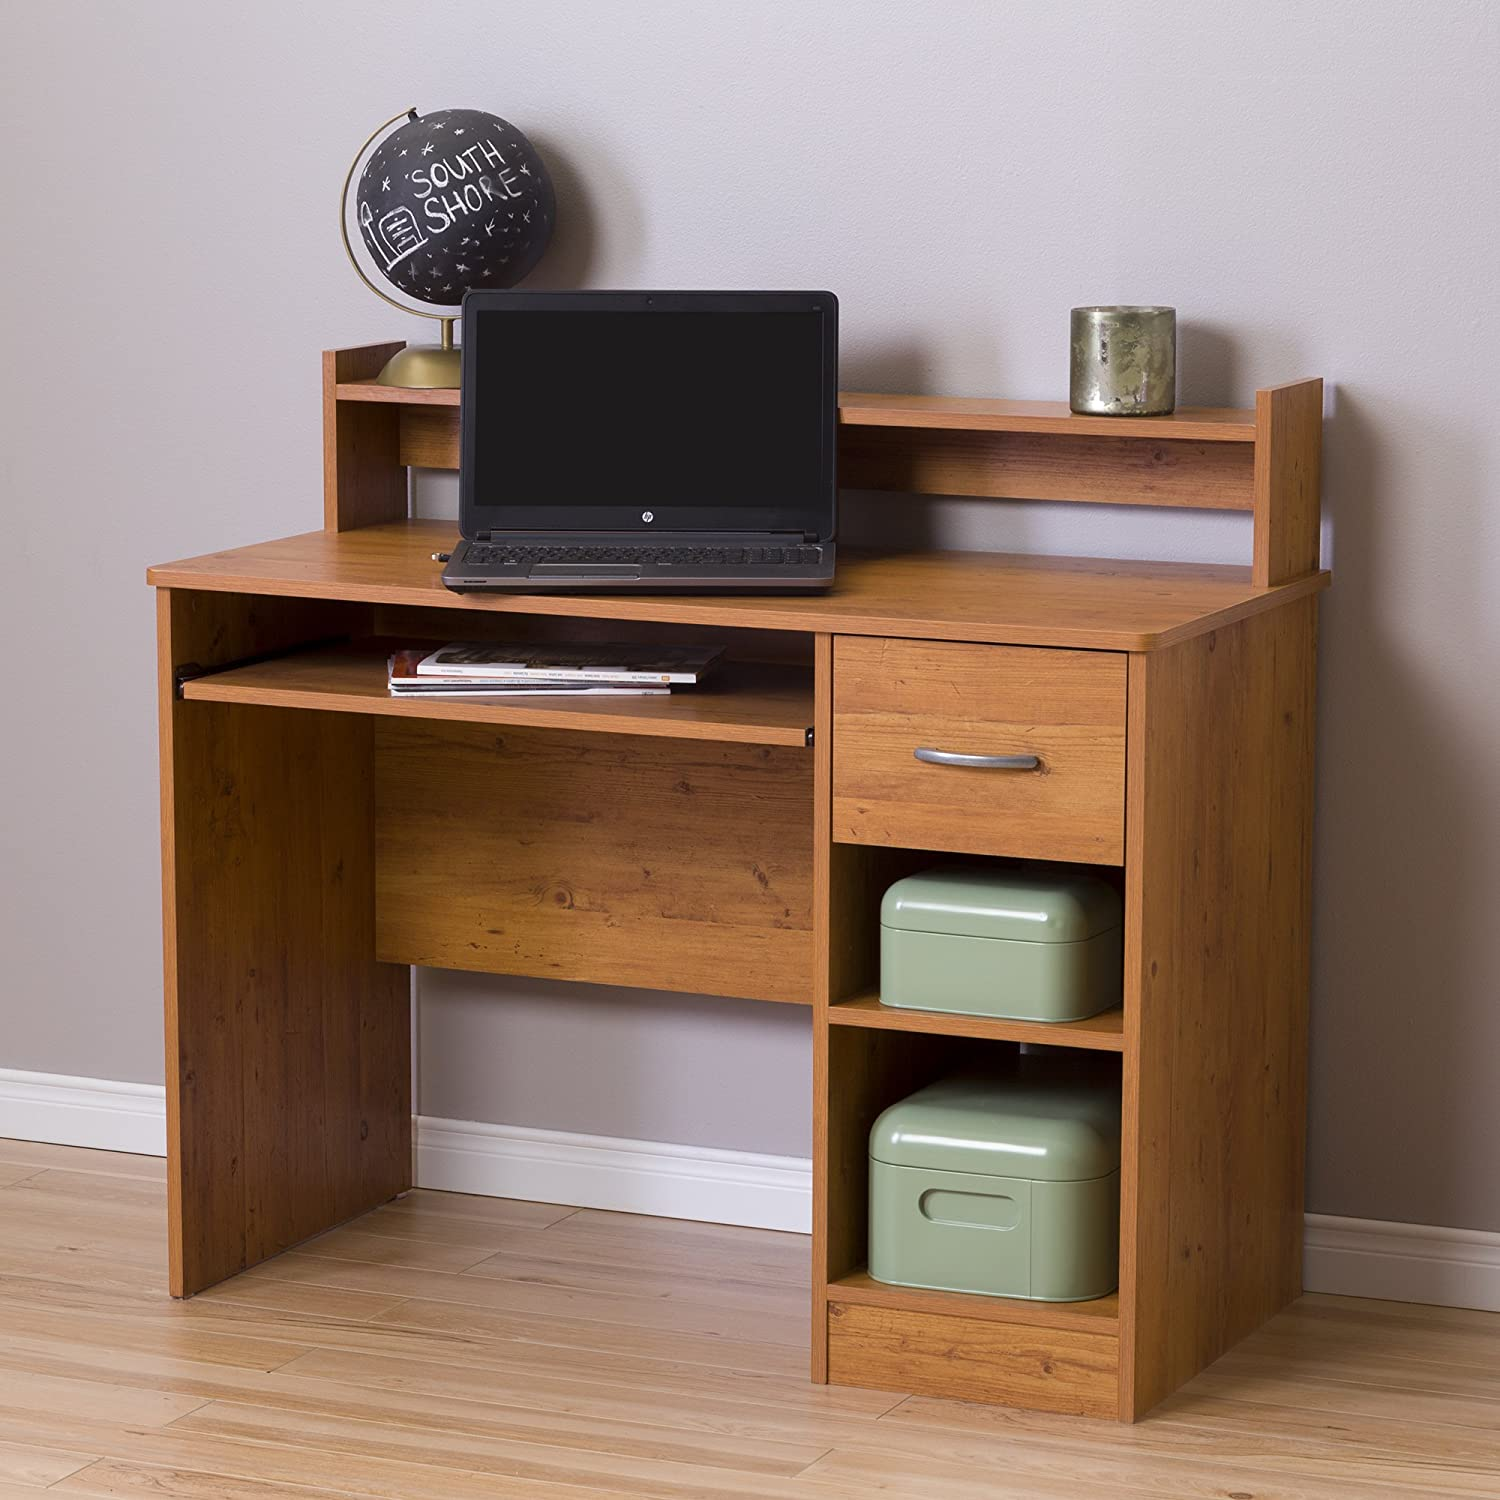 South Shore Axess Desk, Country Pine